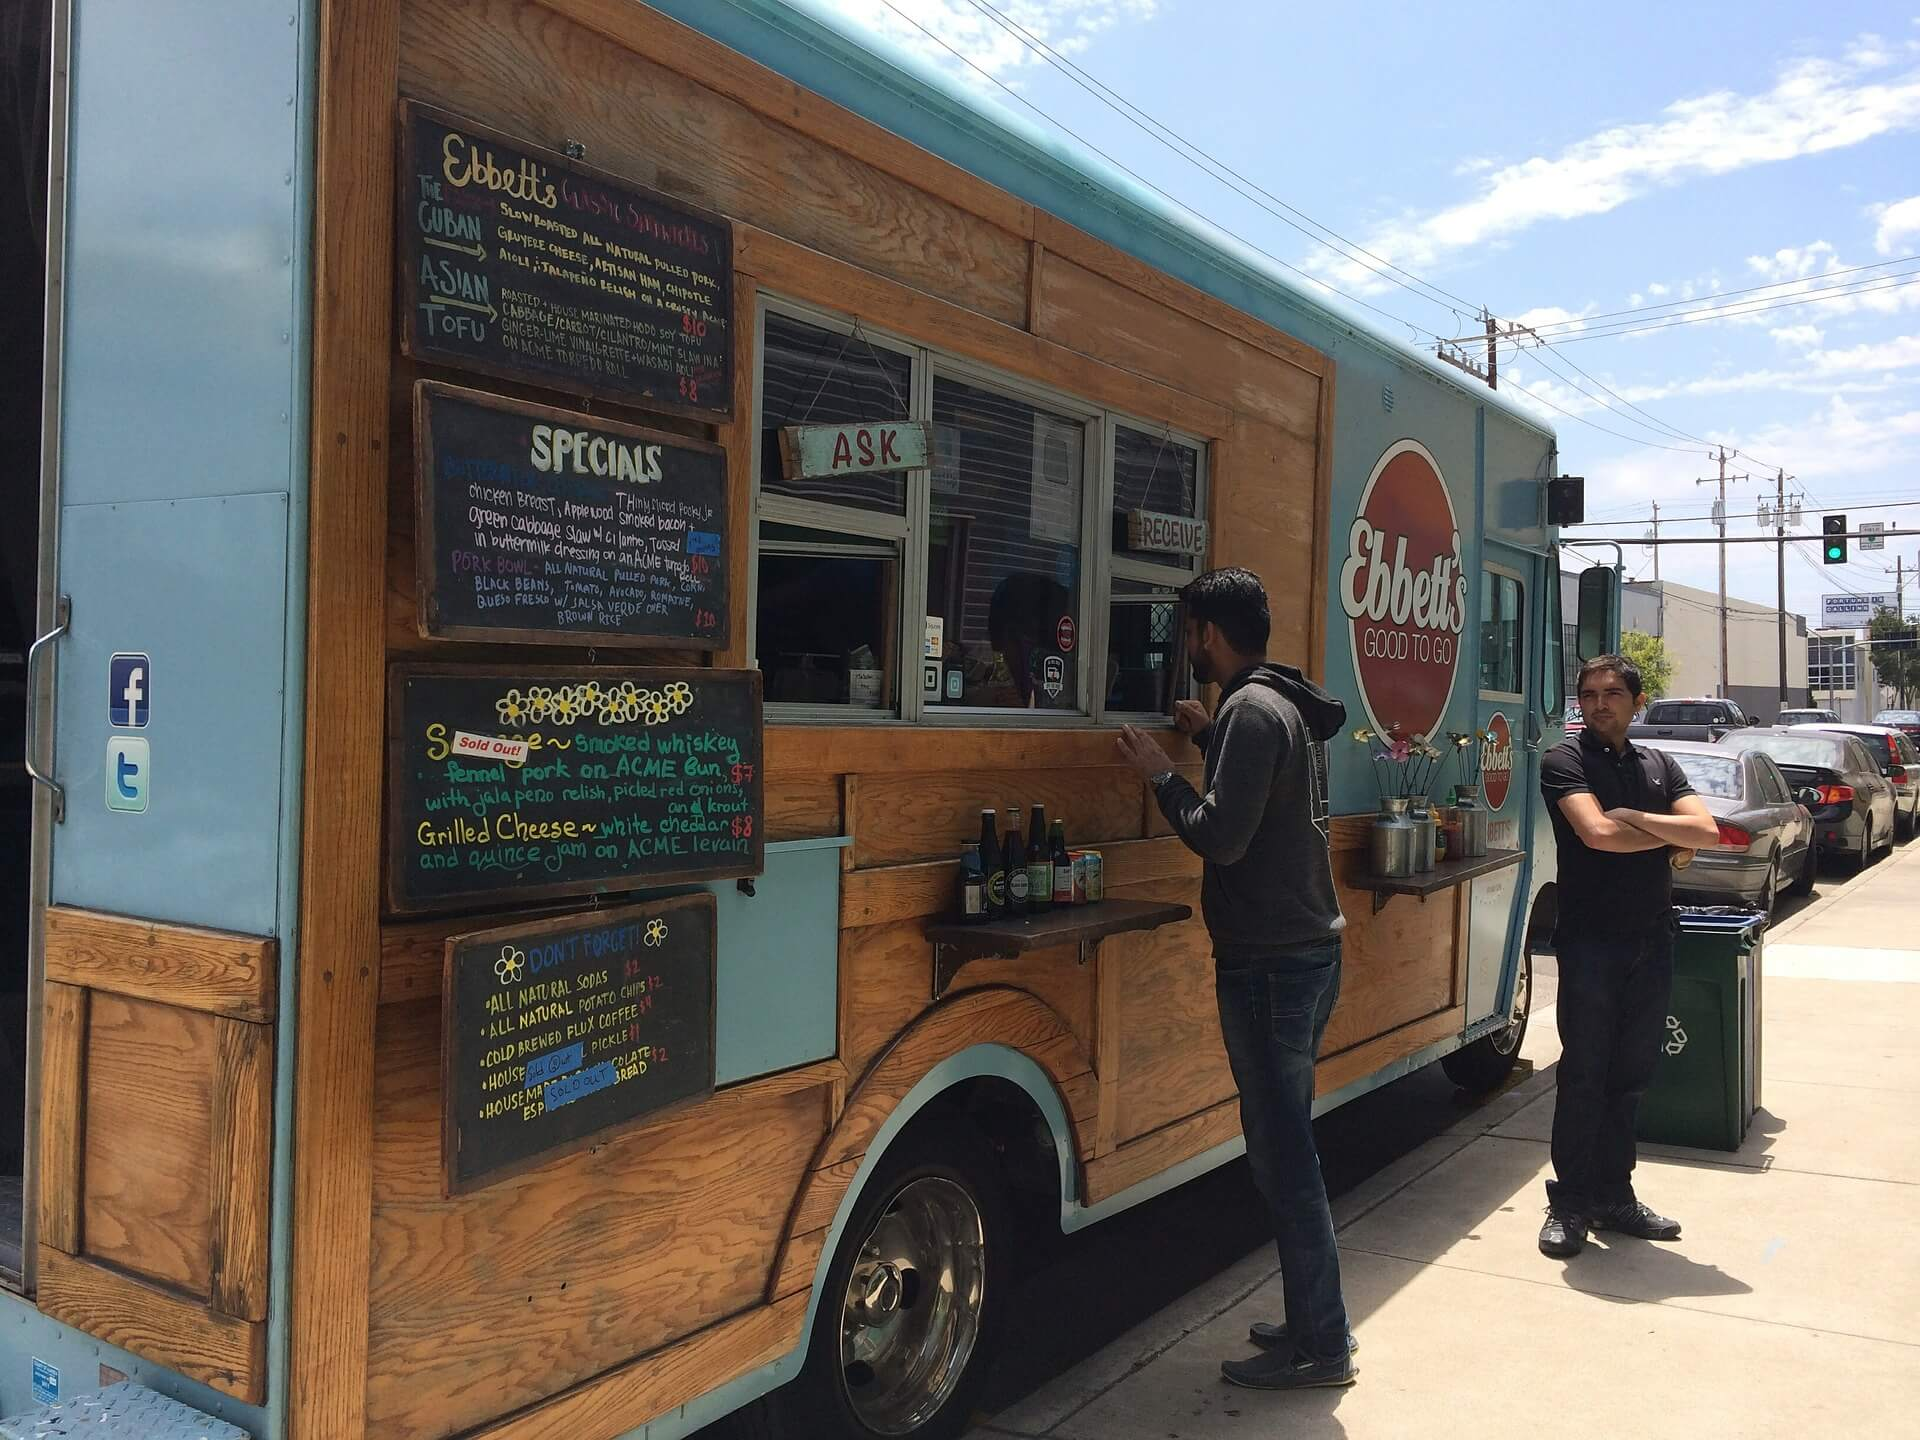 Owning And Running A Food Truck From Being Your Own Boss To Having The Capability Of Working Anywhere There Are Many Attractive Reasons Enter